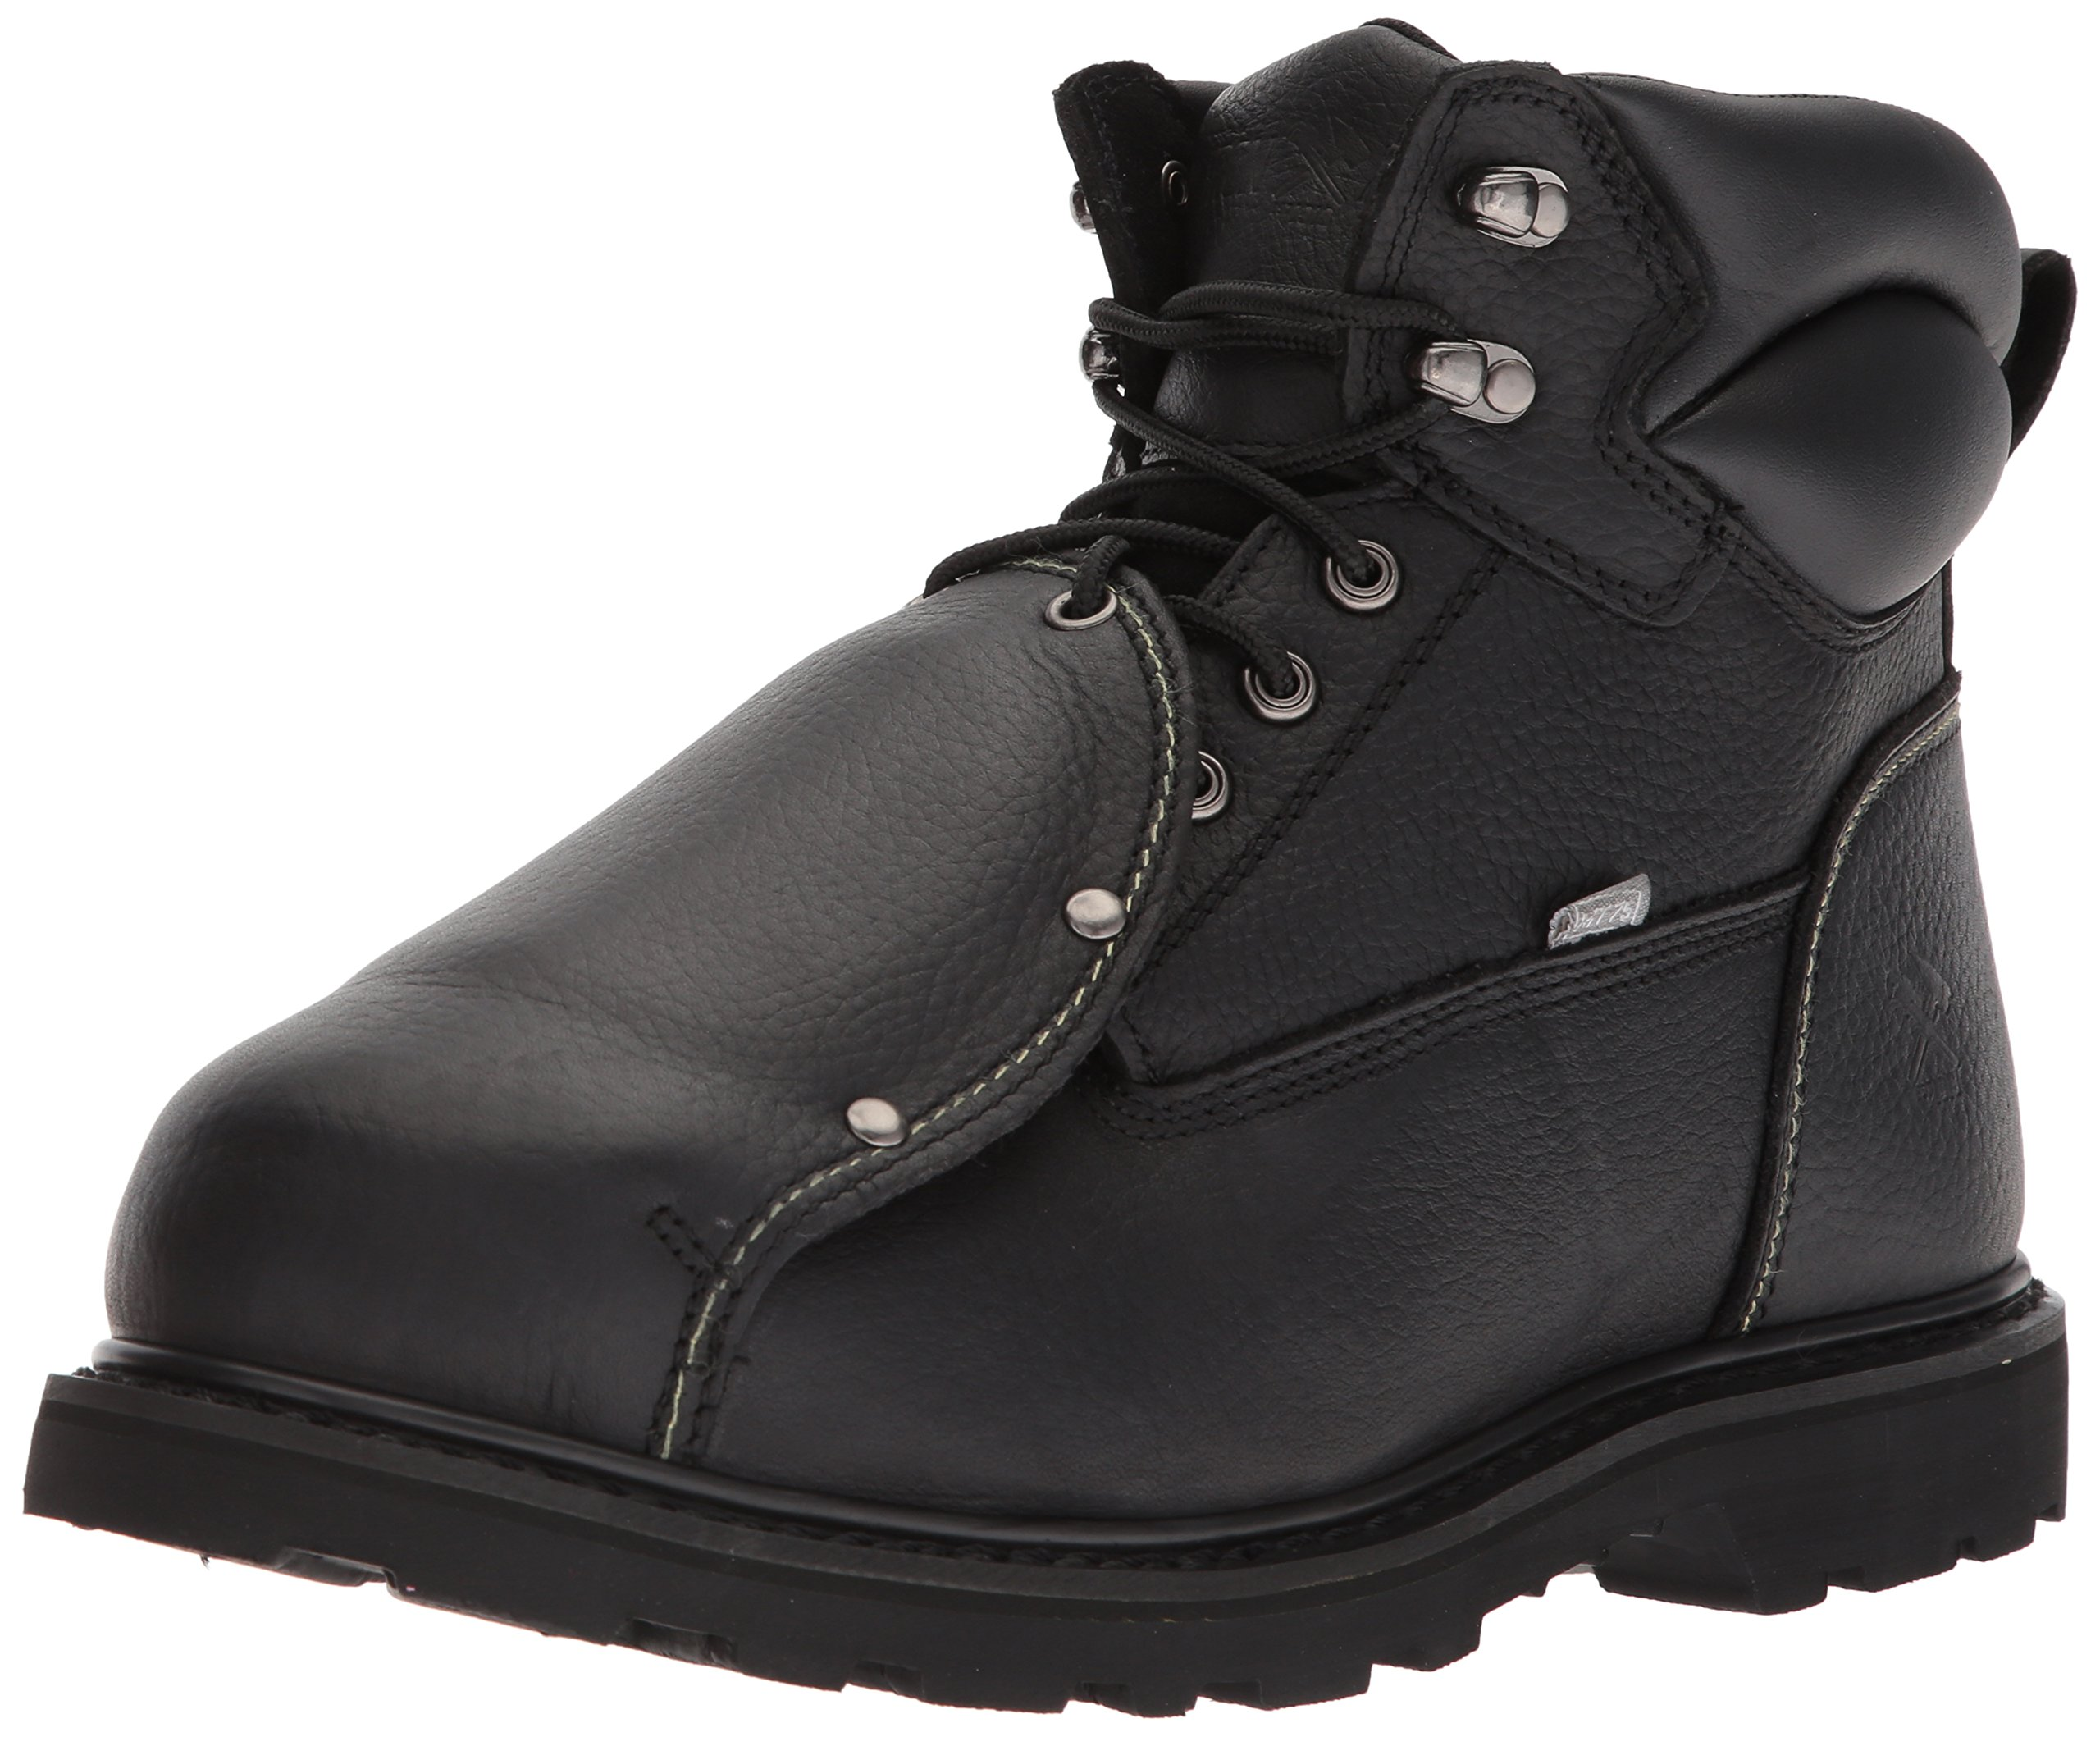 Iron Age Men's Ia5016 Ground Breaker Industrial and Construction Shoe, Black, 9.5 W US